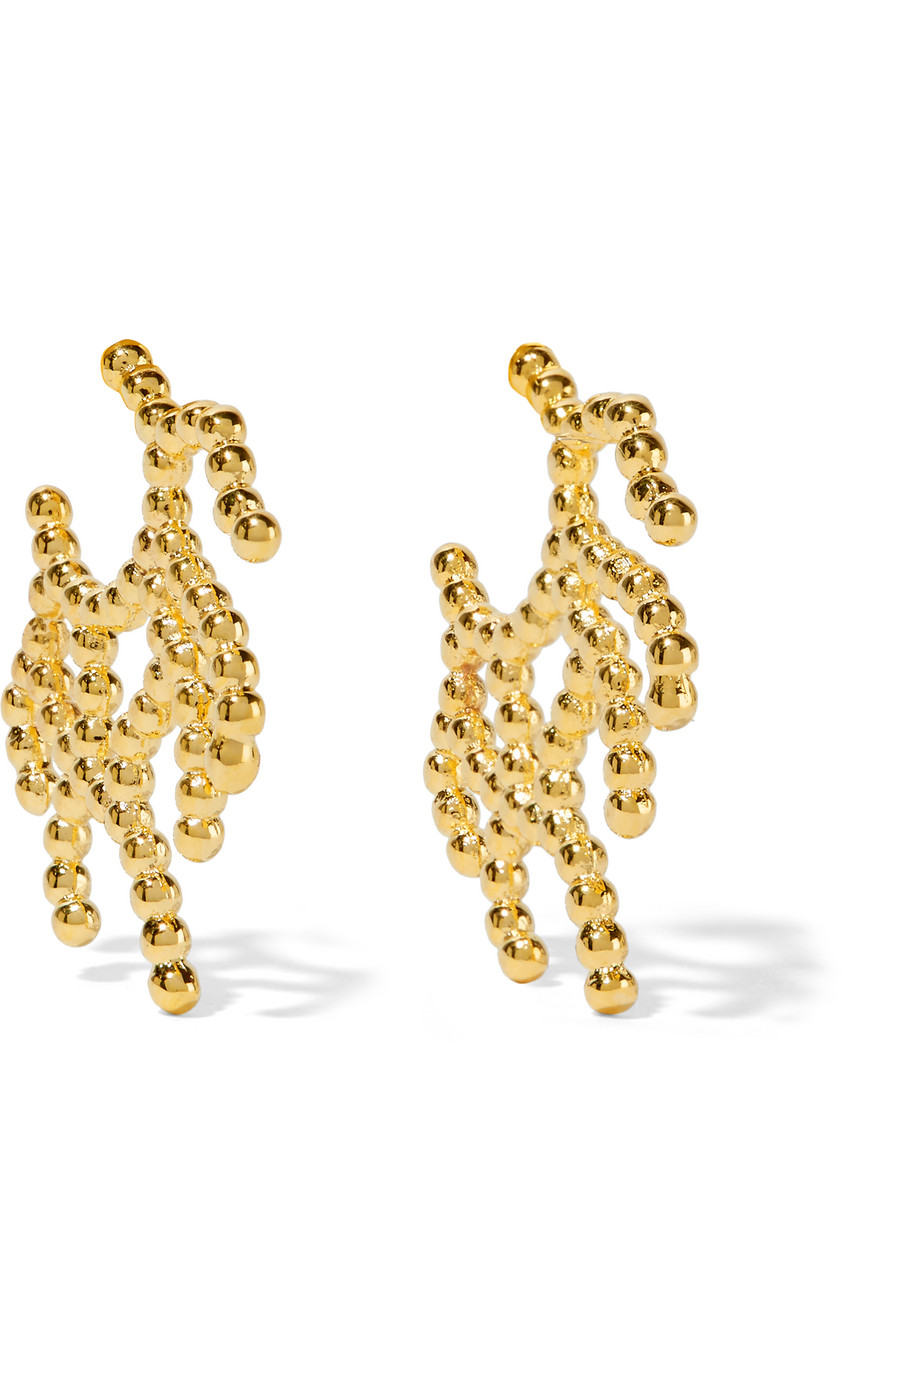 Arme De L'amour Coral Gold-Plated Earrings, Women's